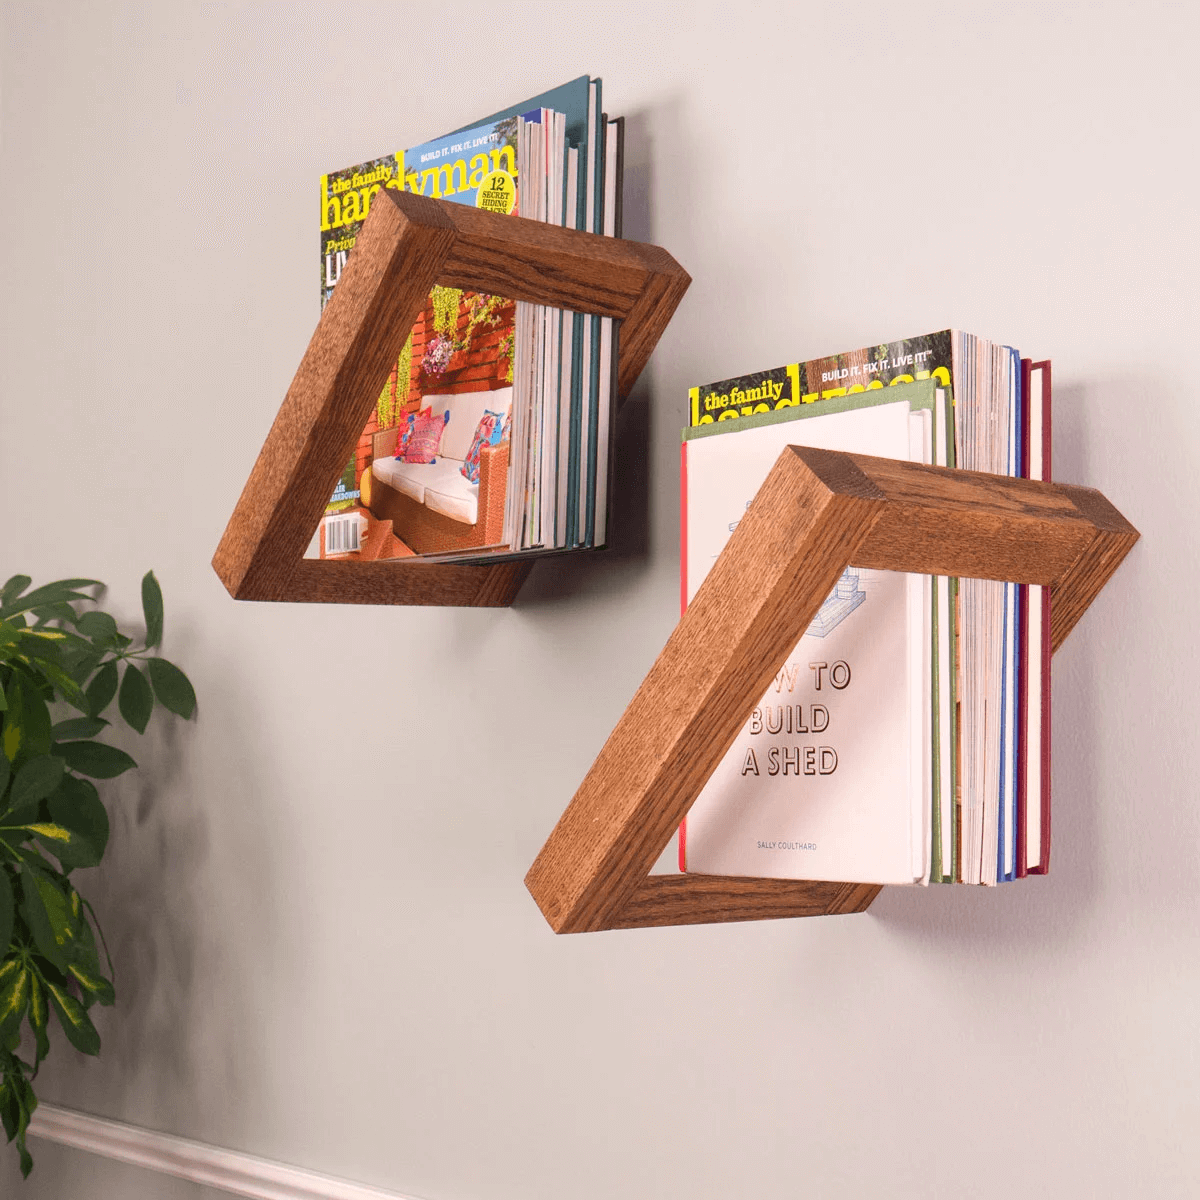 FLOATING WOOD BOOKSHELF DESIGN IDEAS